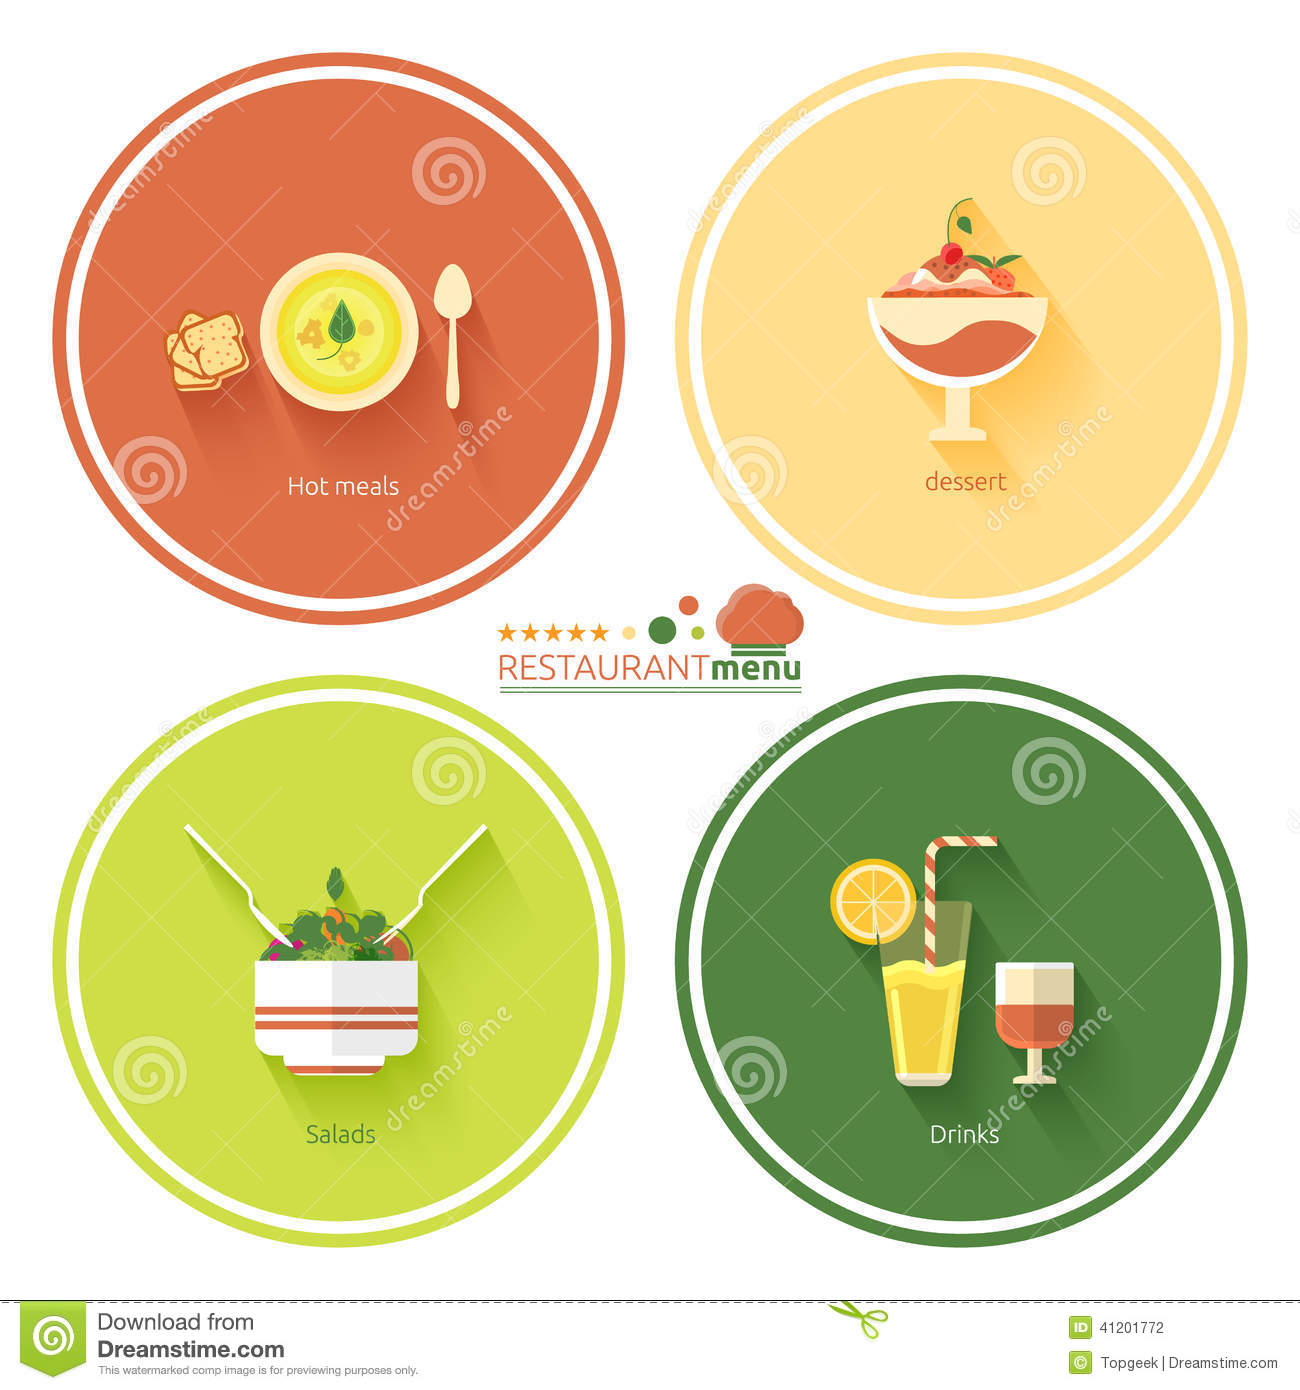 Restaurant menu designs stock vector image